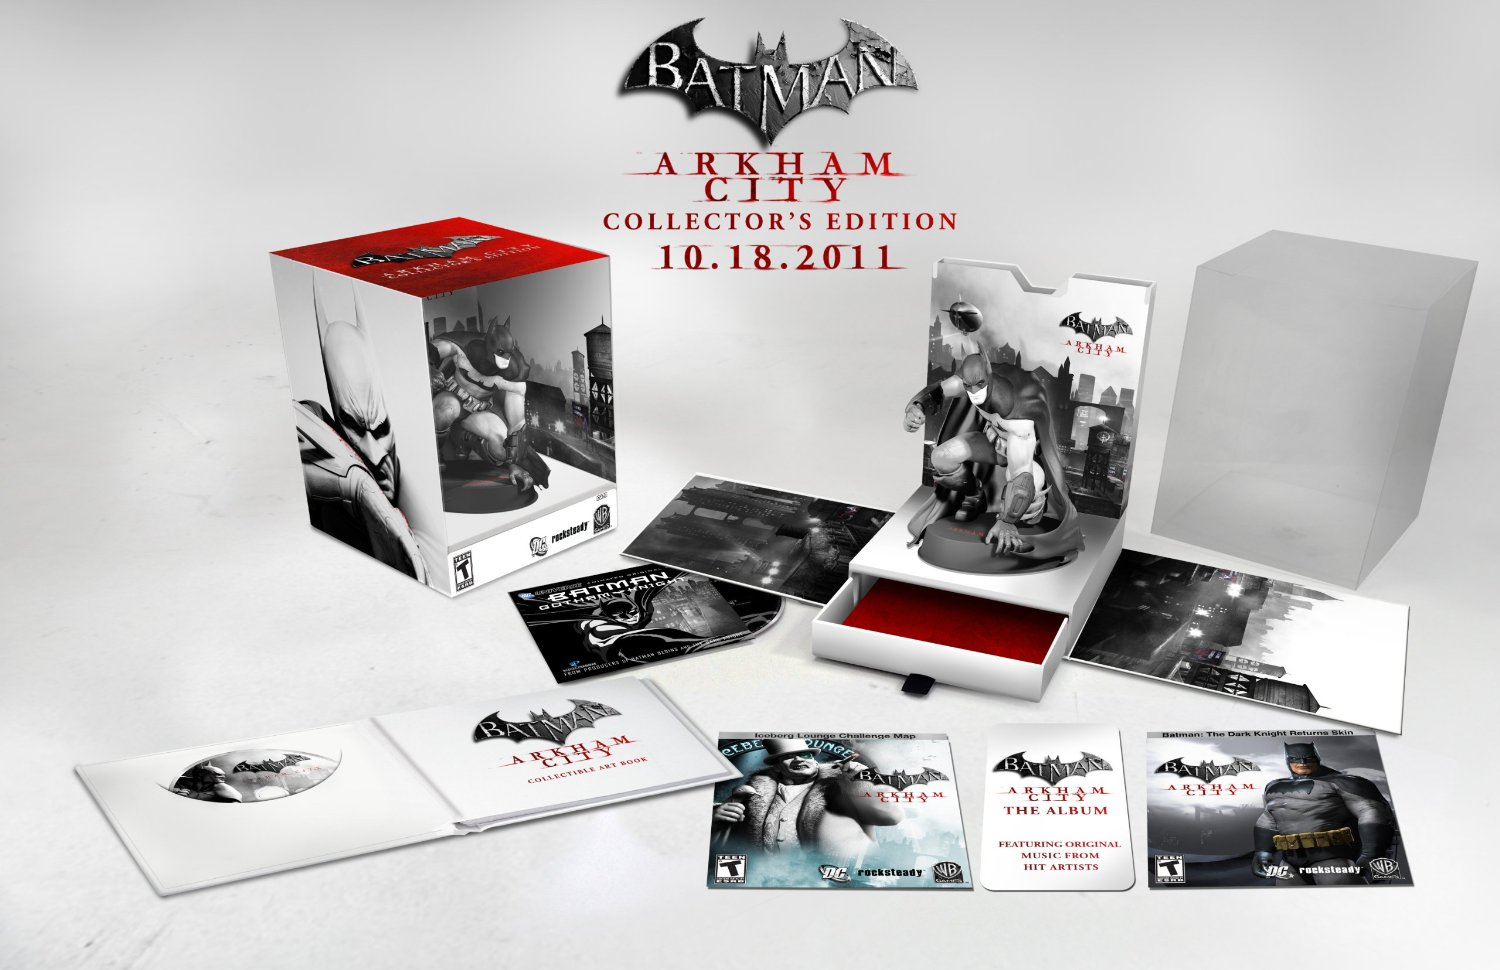 Color image with shades of black, gray, and red predominant, showing the Batman: Arkham City—Collector's Edition boxed up on the left, and disassembled into its components on the right and underneath. Text above reads BATMAN (inside a bat shape), ARKHAM CITY COLLECTOR'S EDITION 10.18.2011.